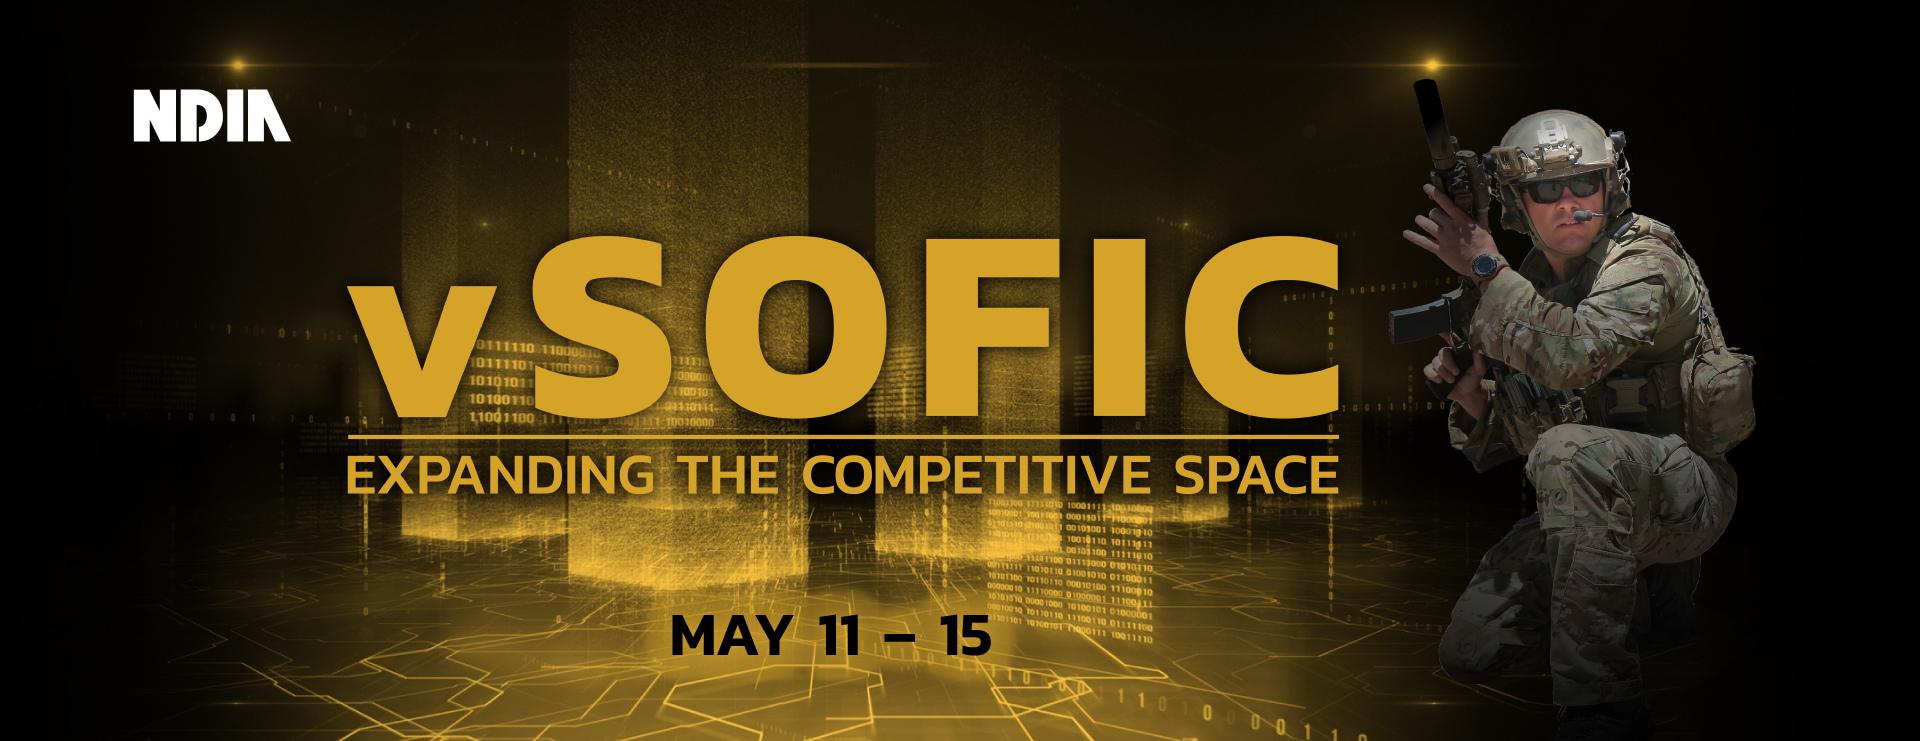 vSOFIC branded graphic; a dark background with images of digital yellow towers in the center, including the words 'vSOFIC: Expanding the Competitive Space; May 11 - 15 in gold coloring. To the right of center is a man in military uniform is pictured to the right, holding a gun and crouching down. The NDIA logo is in white on the upper left corner of the image.